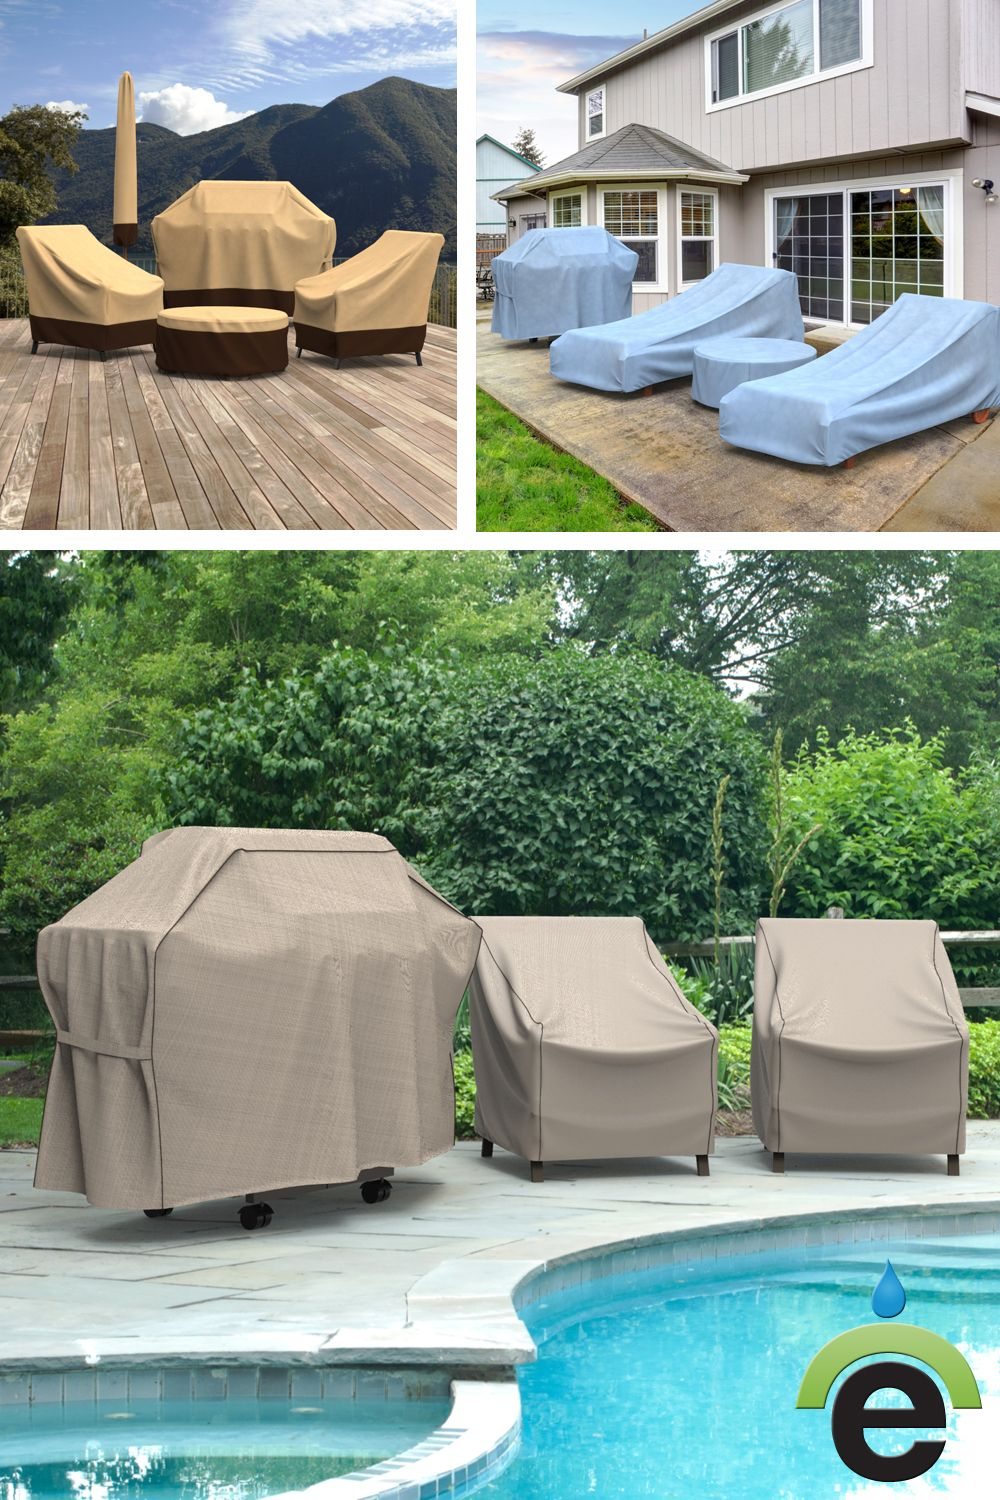 Patio Furniture Is An Essential Part Of Any Outdoor Living E And Our Covers Are Here To Offer Long Lasting Protection